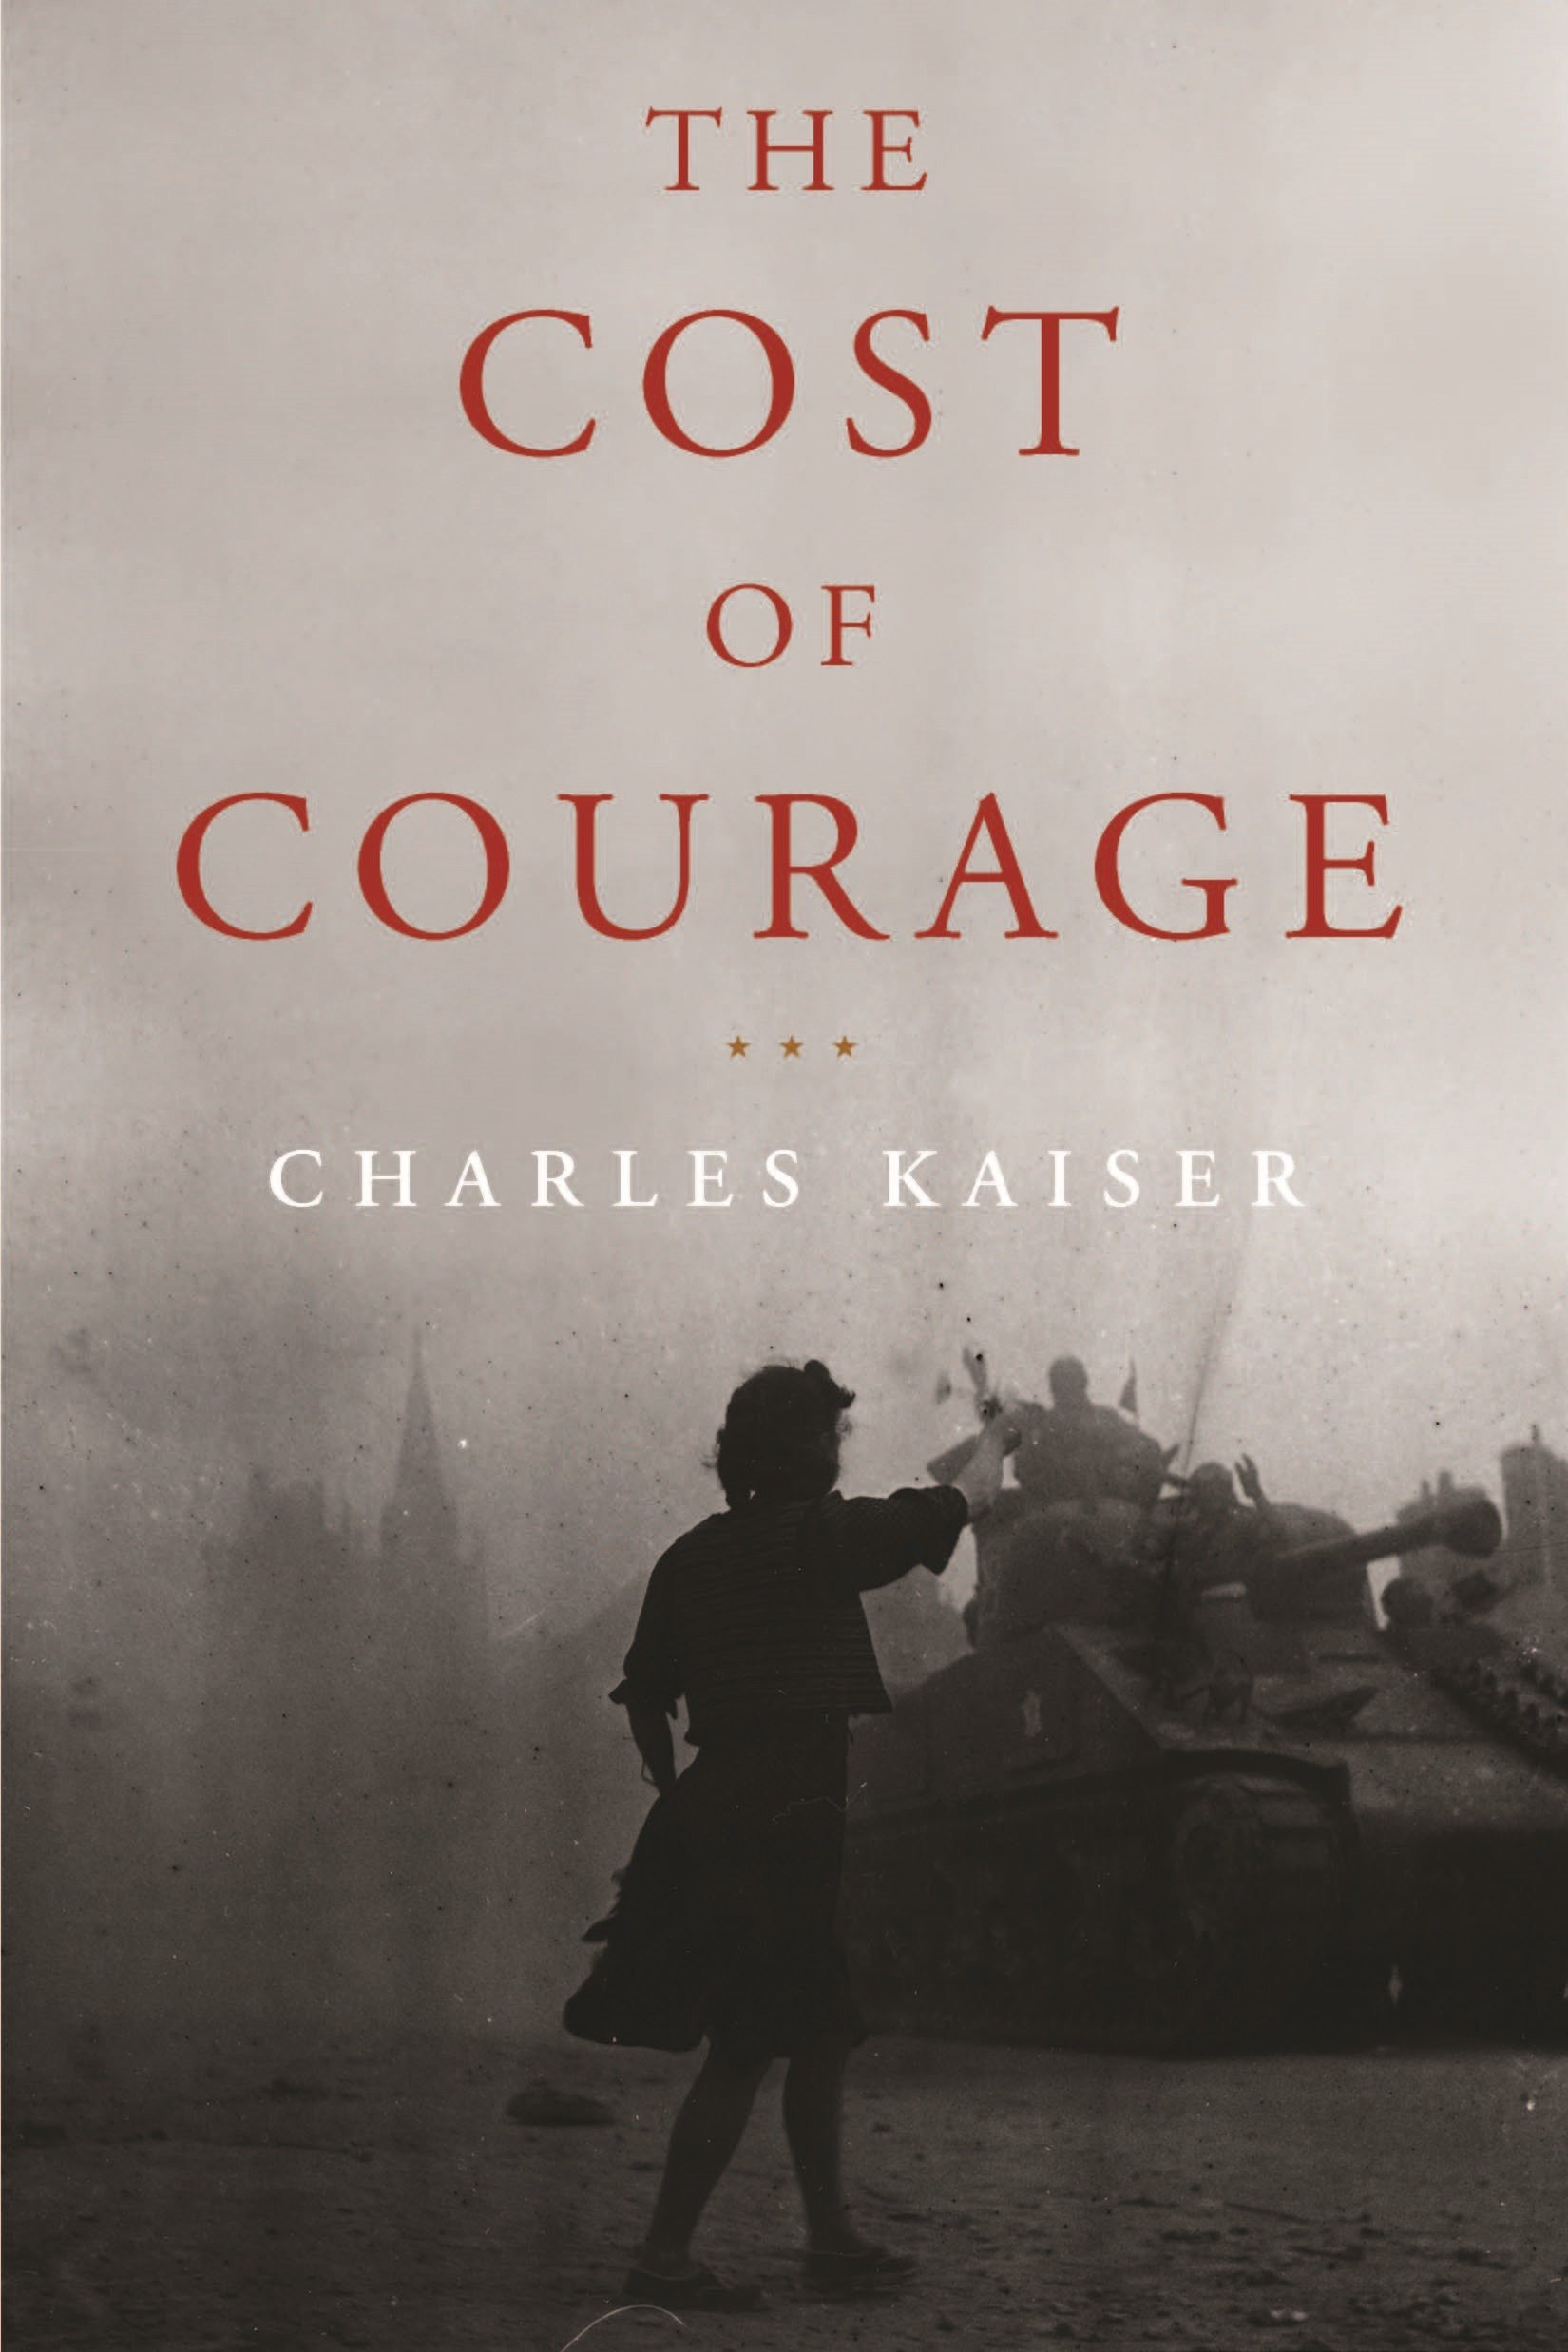 Download The Cost of Courage ePub fb2 book